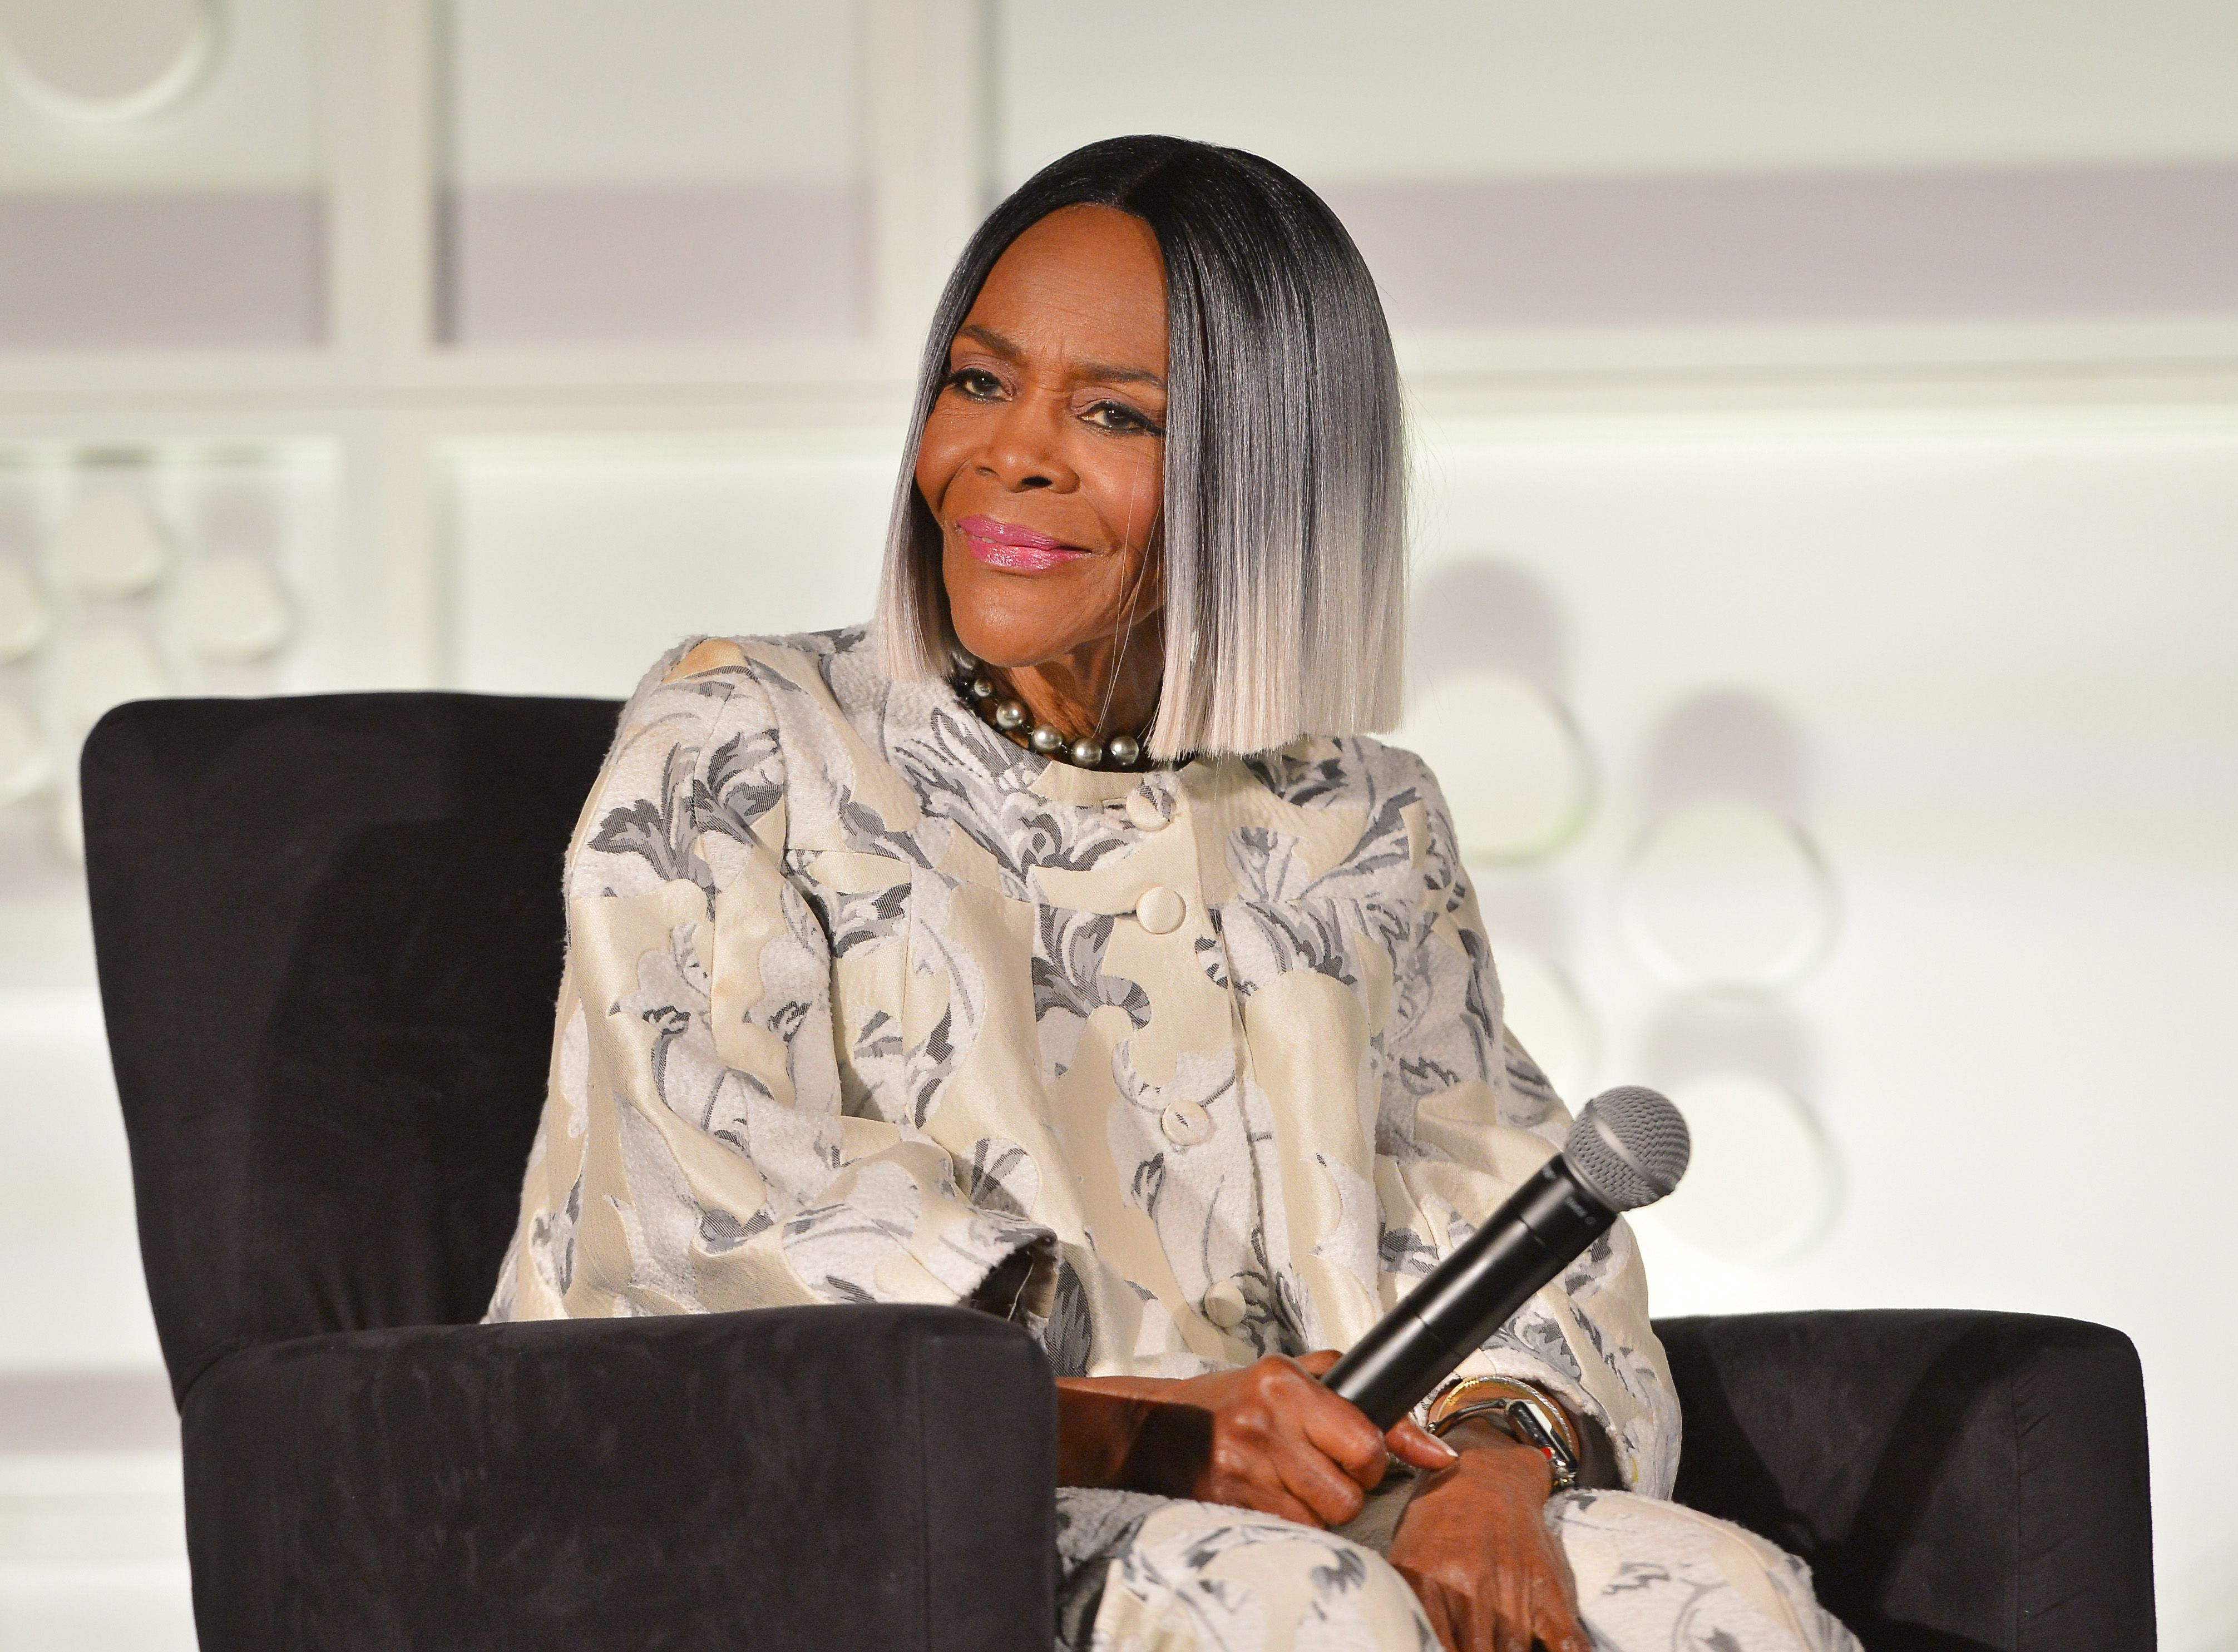 Actor Cicely Tyson speaks onstage at the screening of 'Sounder' at Day 2 of the 2018 TCM Classic Film Festival on April 27, 2018 | Photo: Getty Images